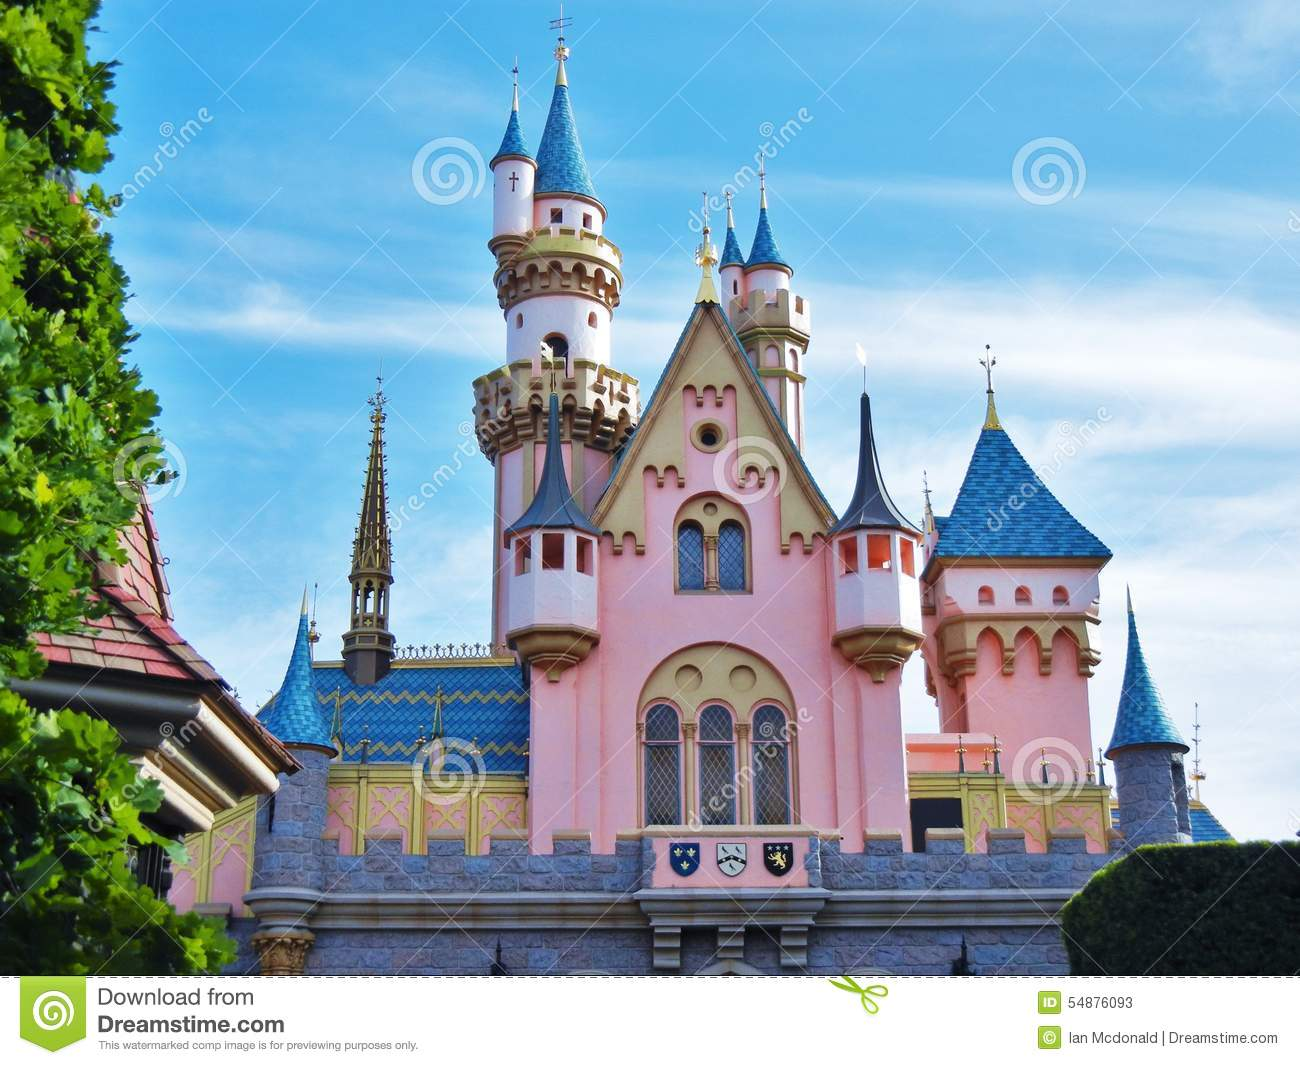 Sleeping Beauty's Castle Editorial Stock Photo.